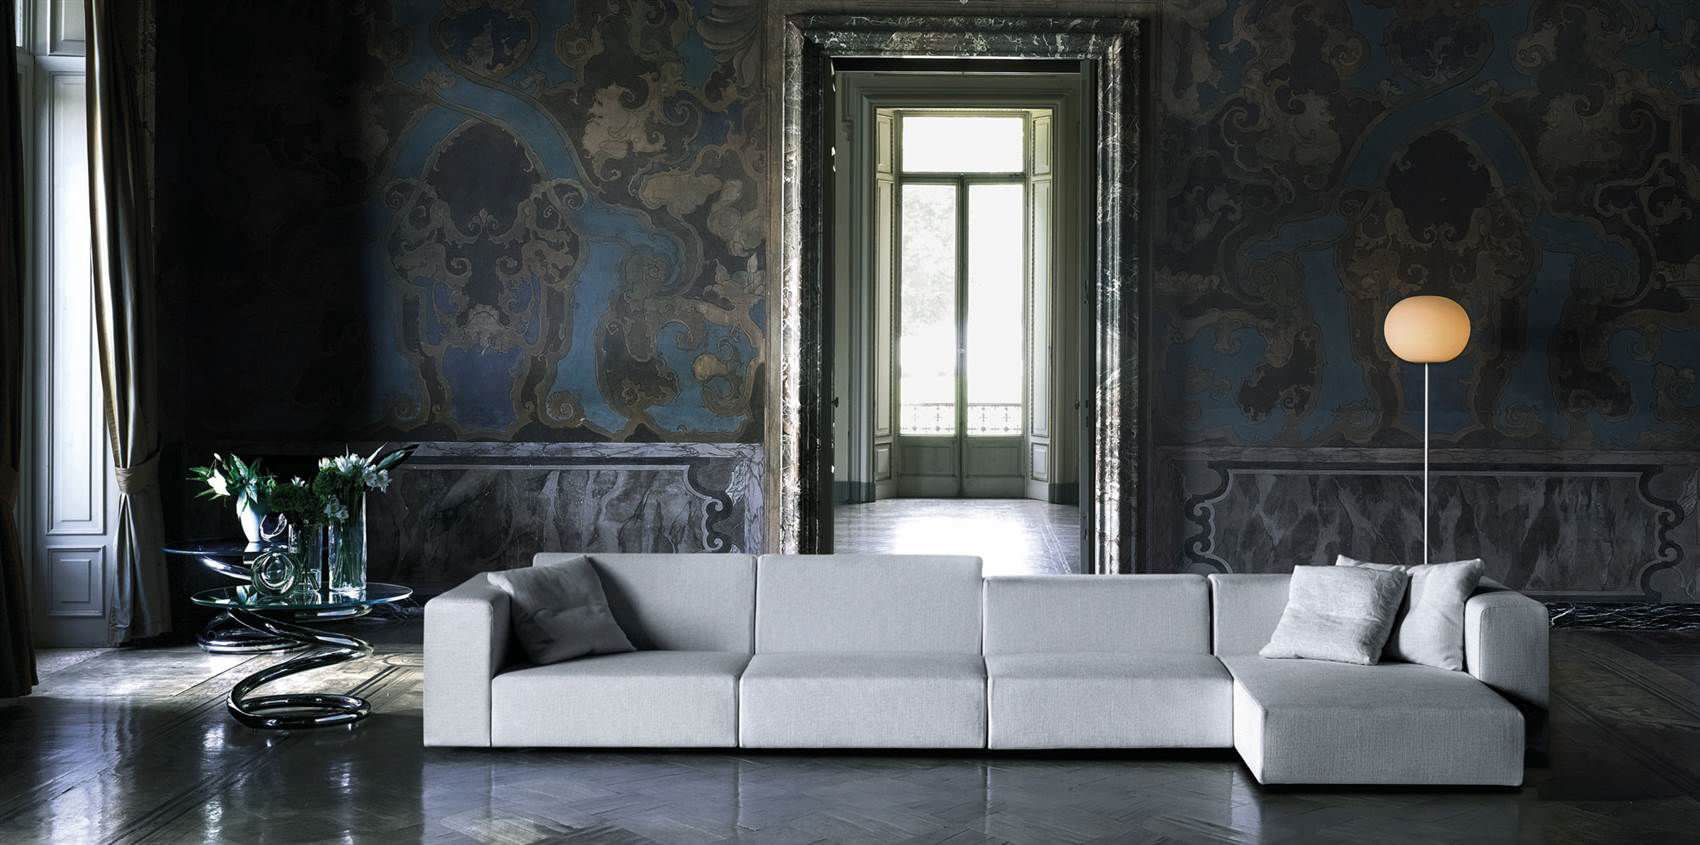 Piero Lissoni Modular Sofa Modular Sofa Contemporary By Piero Lissoni 4 Seater Wall